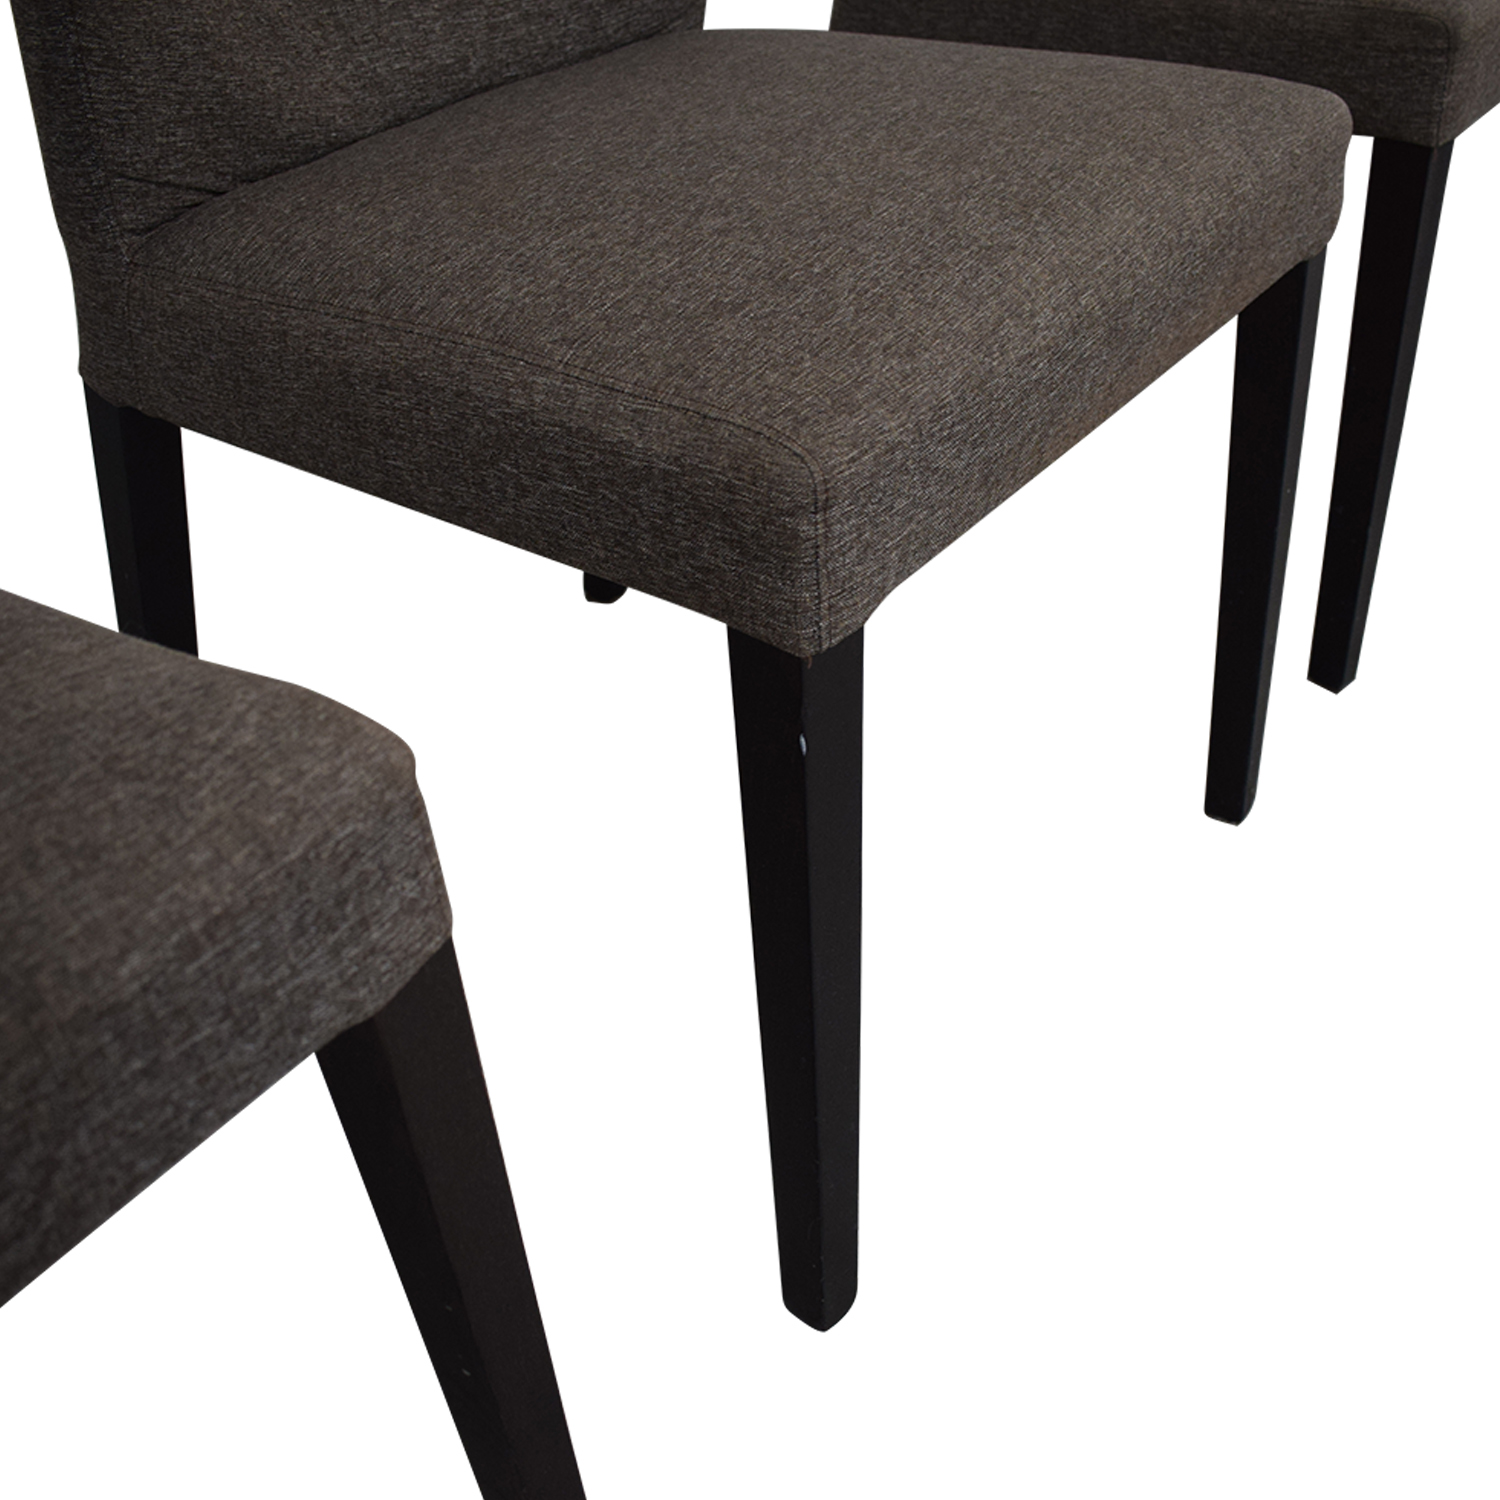 Heal's of London Heals of London Habitat Grey Upholstered Dining Chairs nj